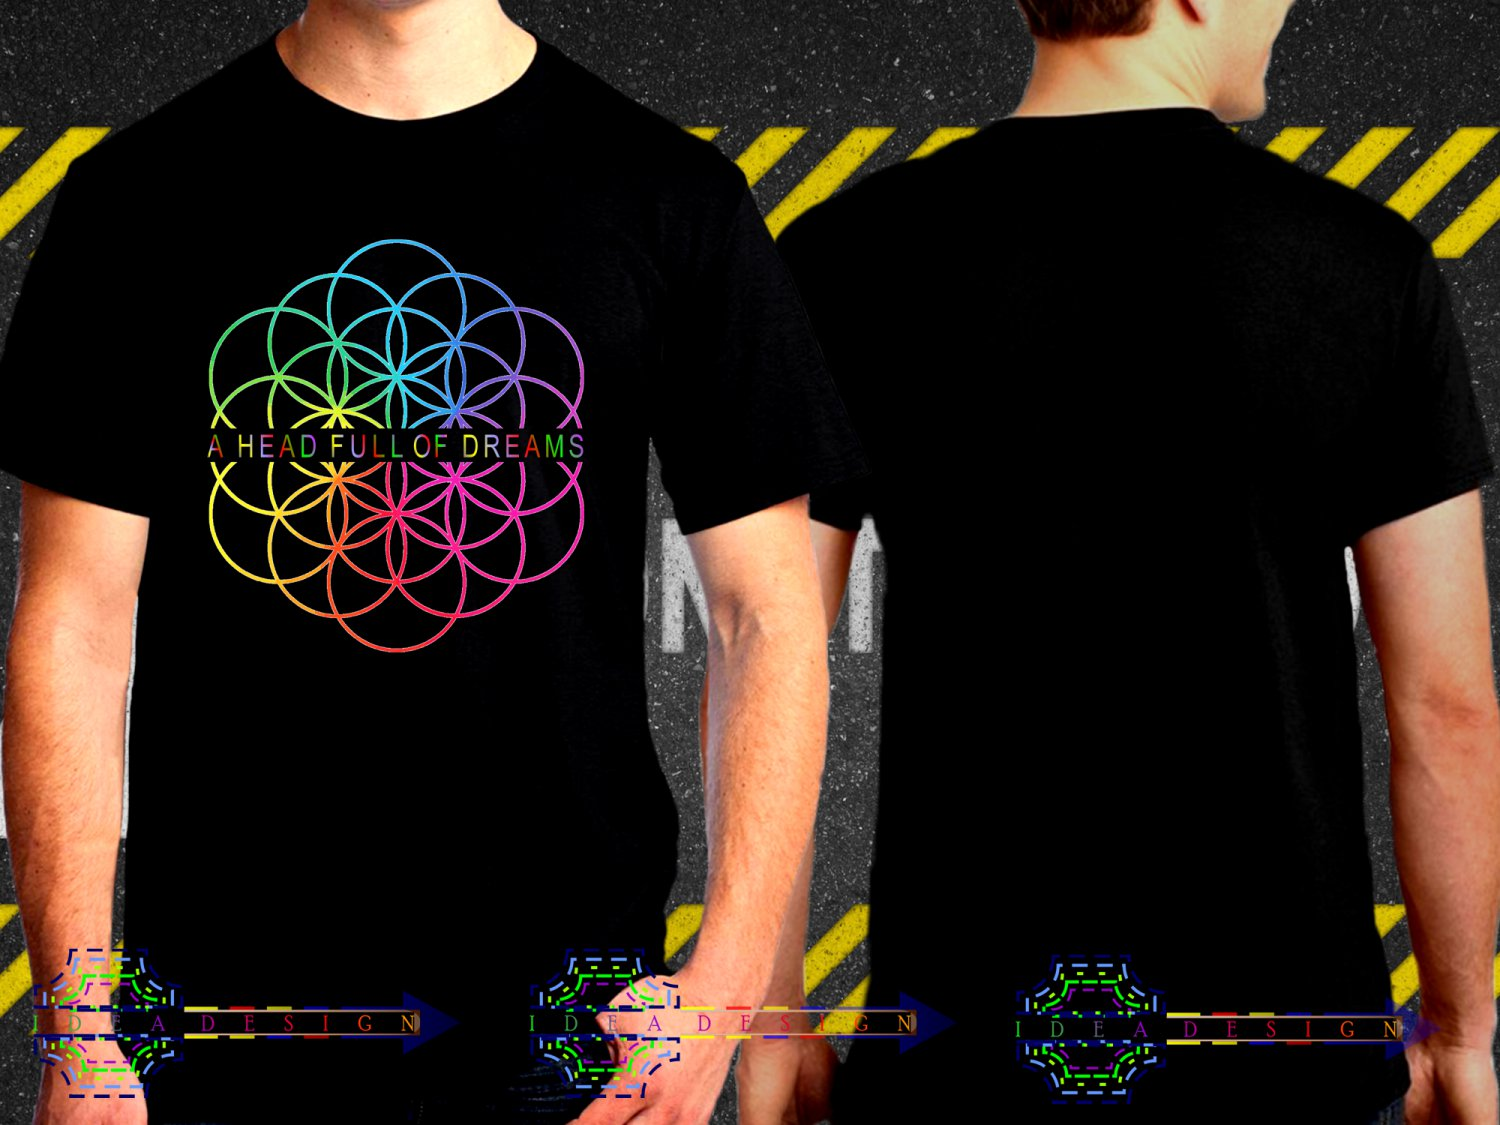 Official Coldplay Shirts  Vinyl Posters Apparel amp Merch